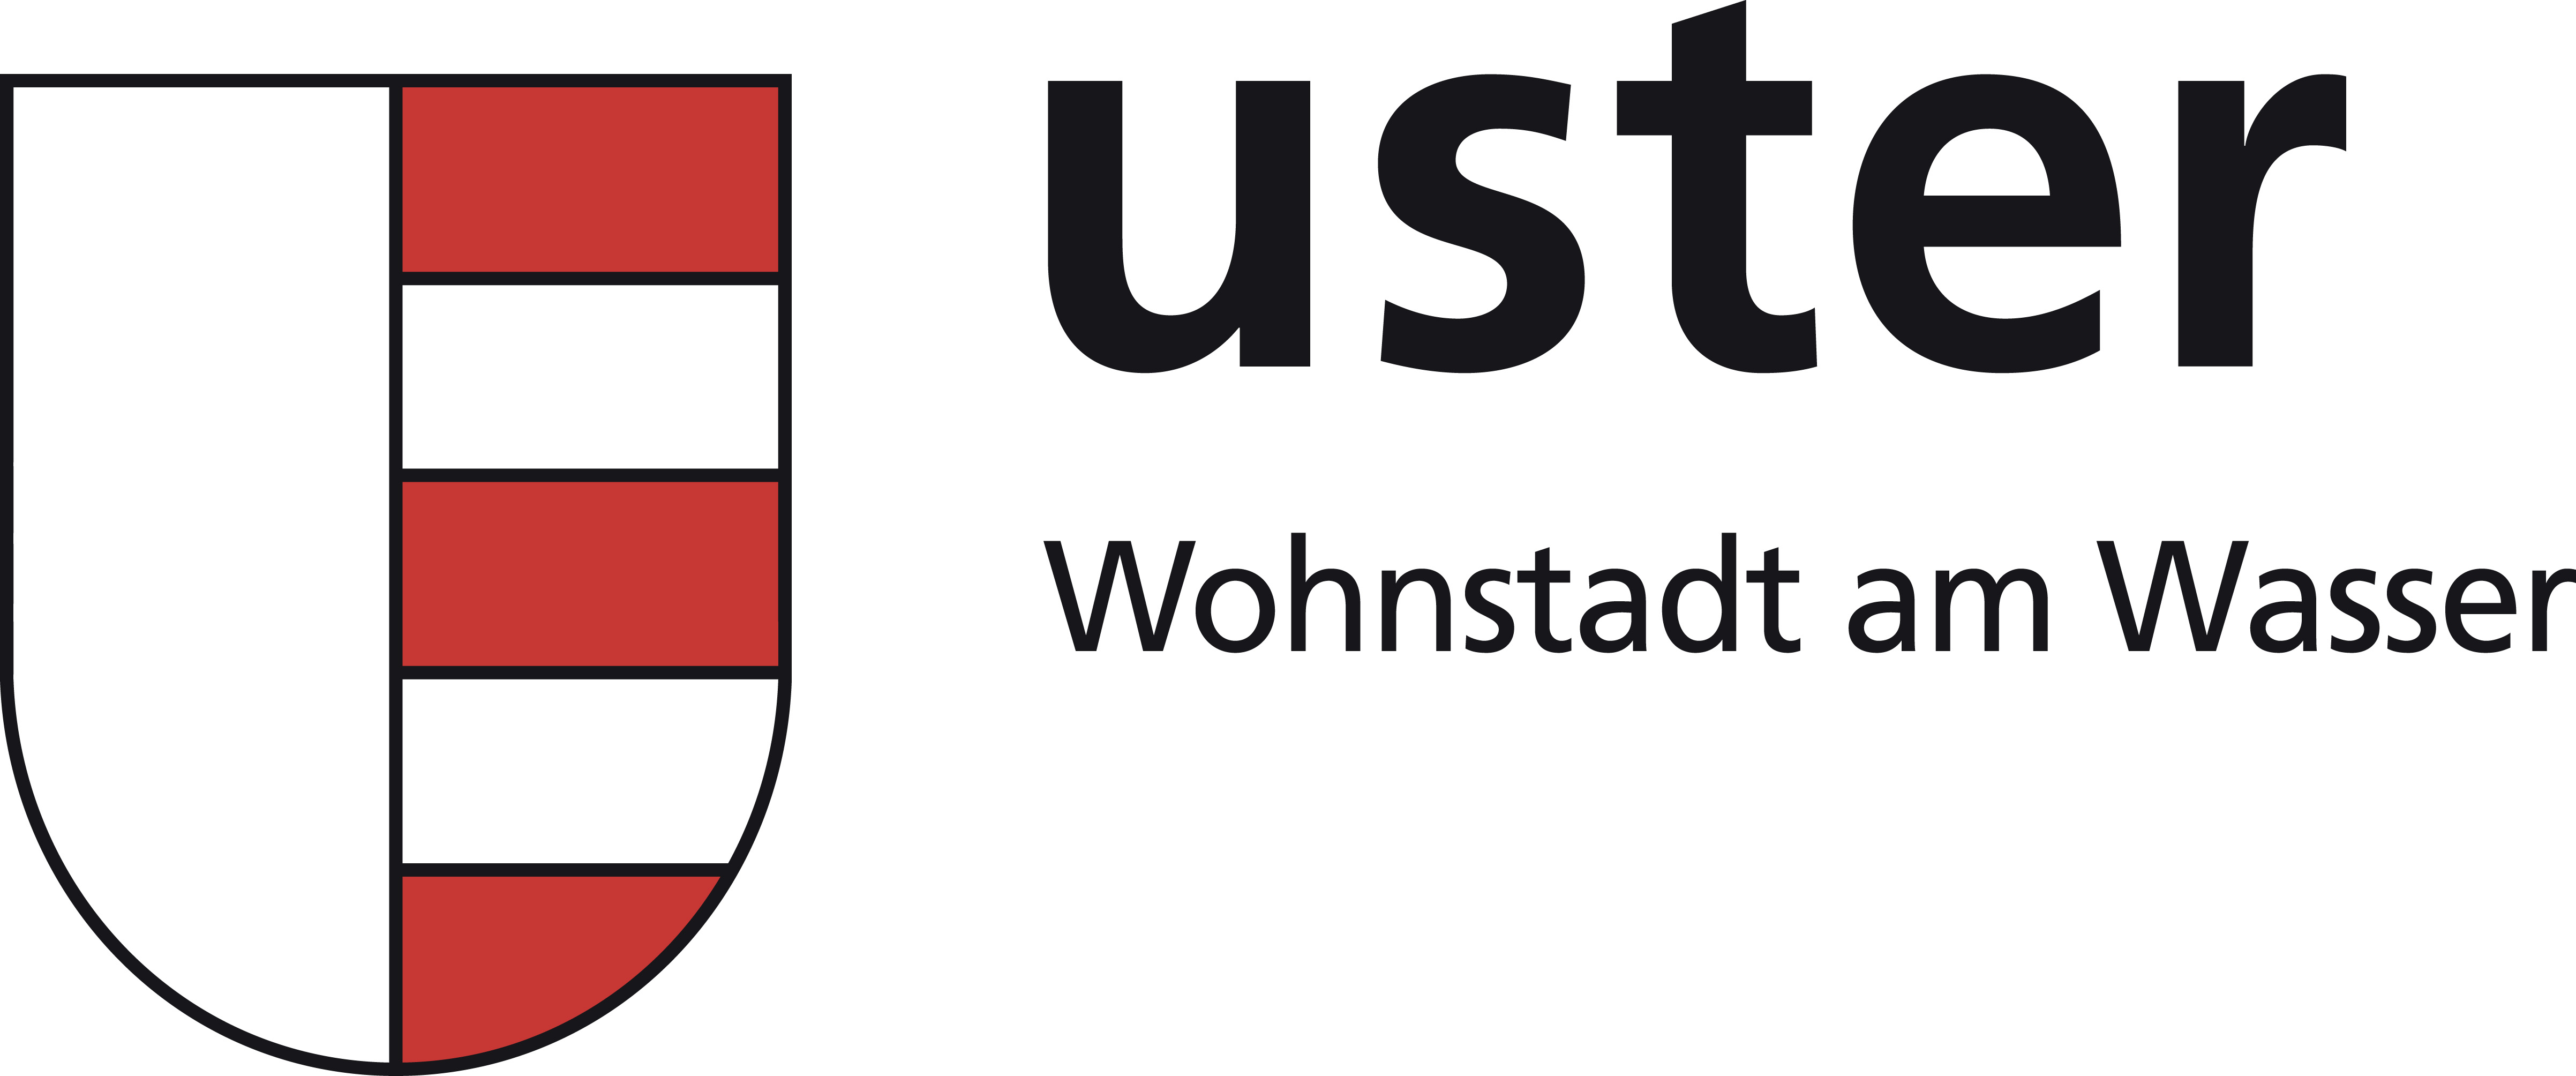 stadt-uster